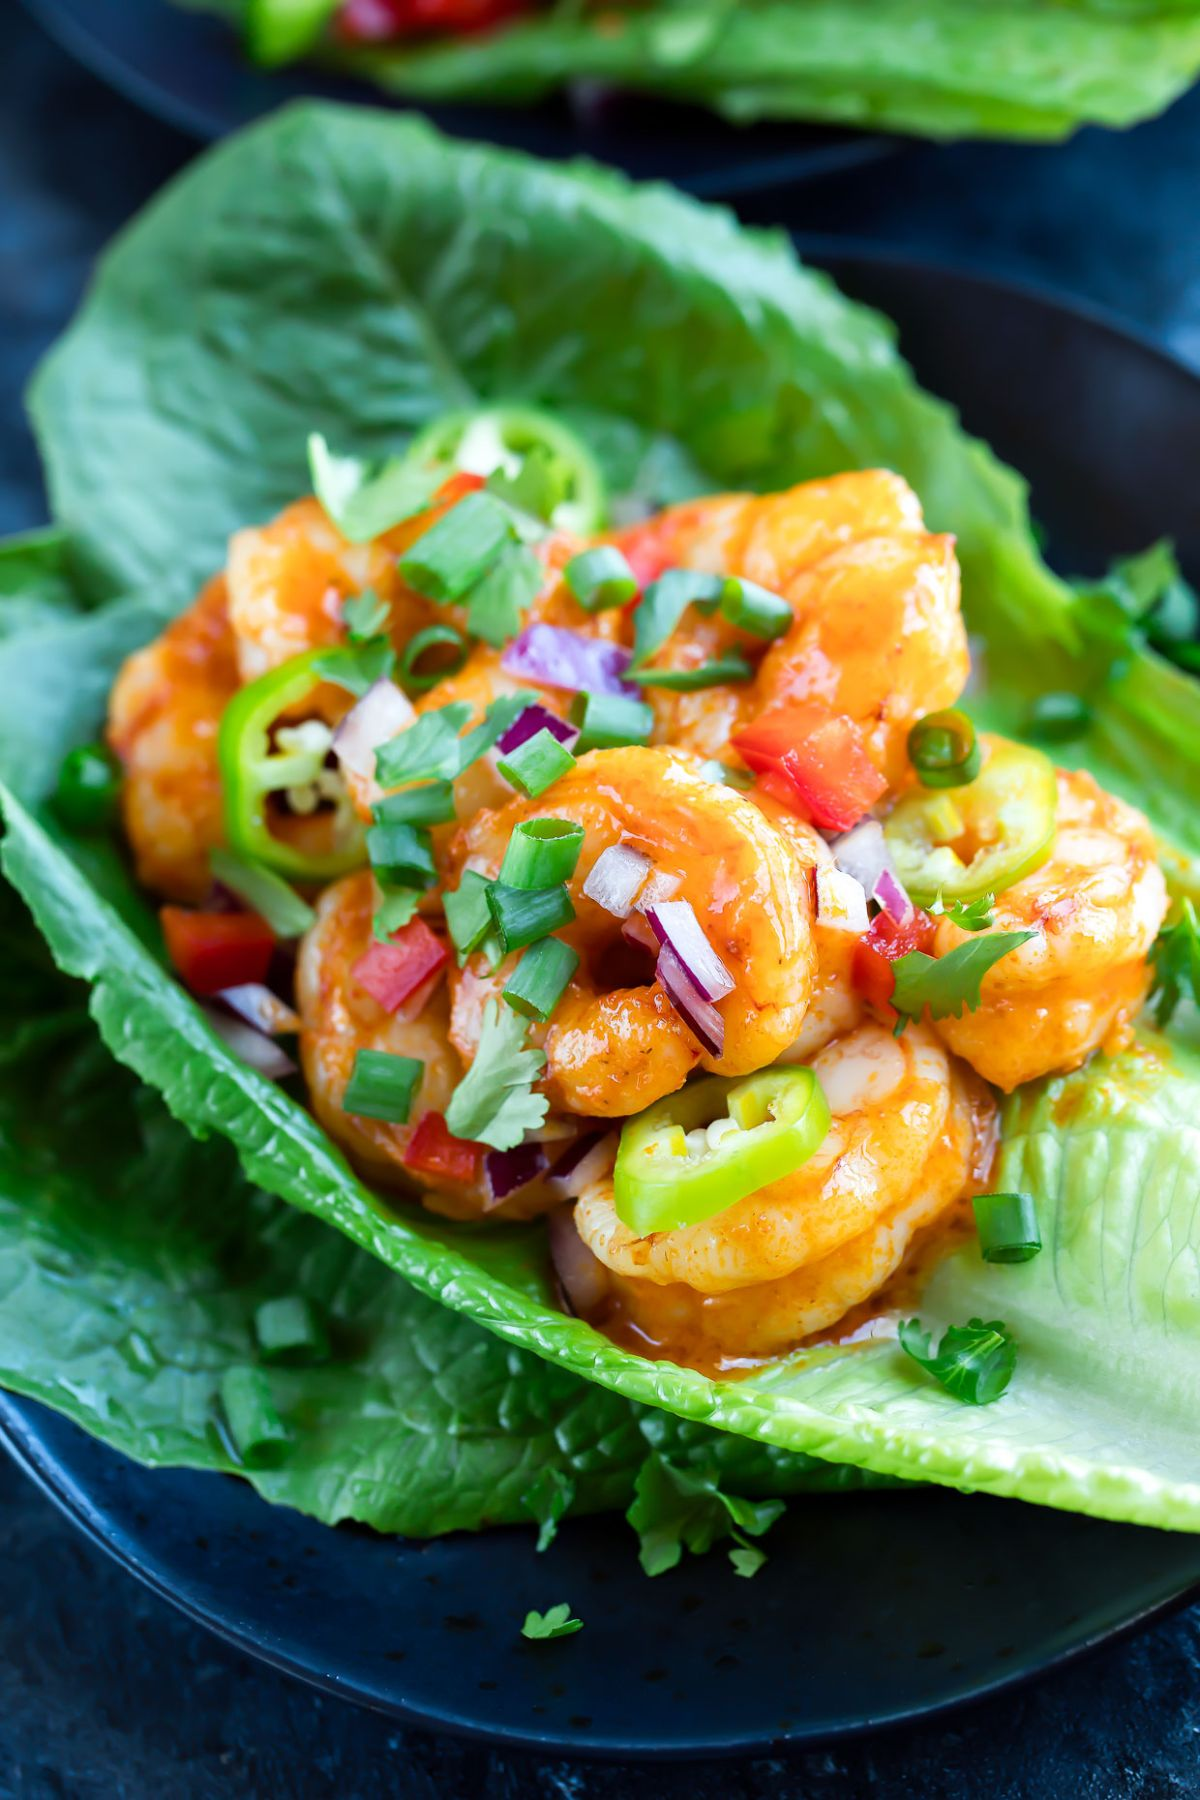 A close up of a lettuce cup filled with shrimp and sliced jalapenos sprinkled with chopped red onion and scallions